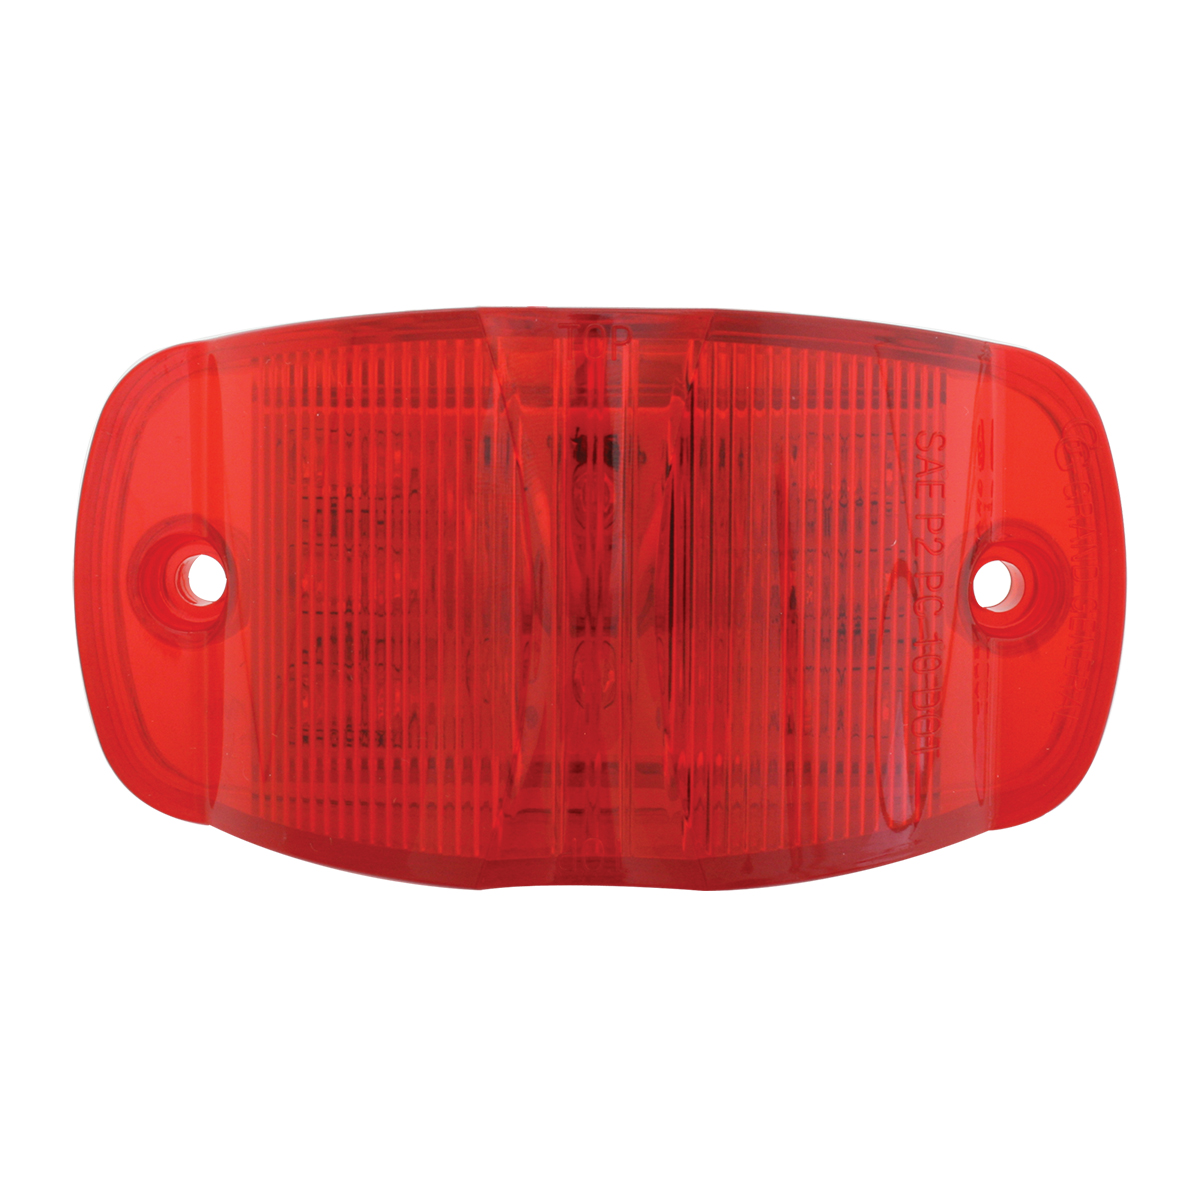 75162 Rectangular Camel Back Wide Angle Dual Function LED Light